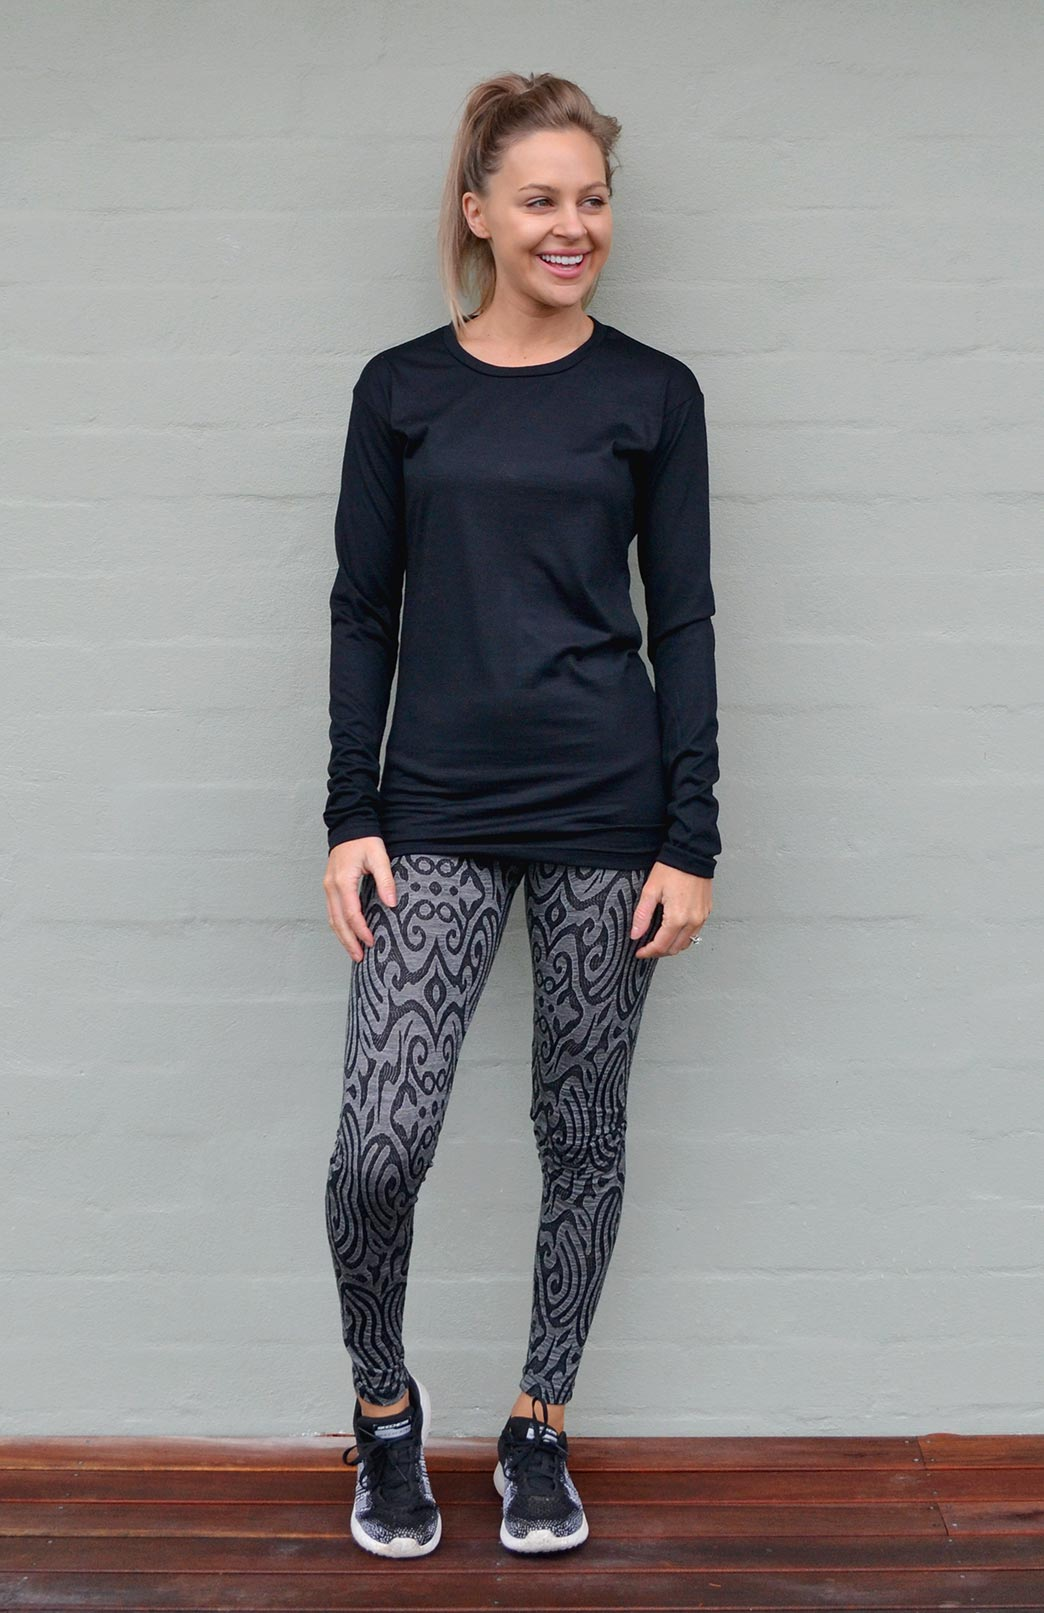 Long Sleeved Crew Neck Top - Midweight (200g) - Women's Black Wool Long Sleeved Crew Neck Pullover Top - Smitten Merino Tasmania Australia